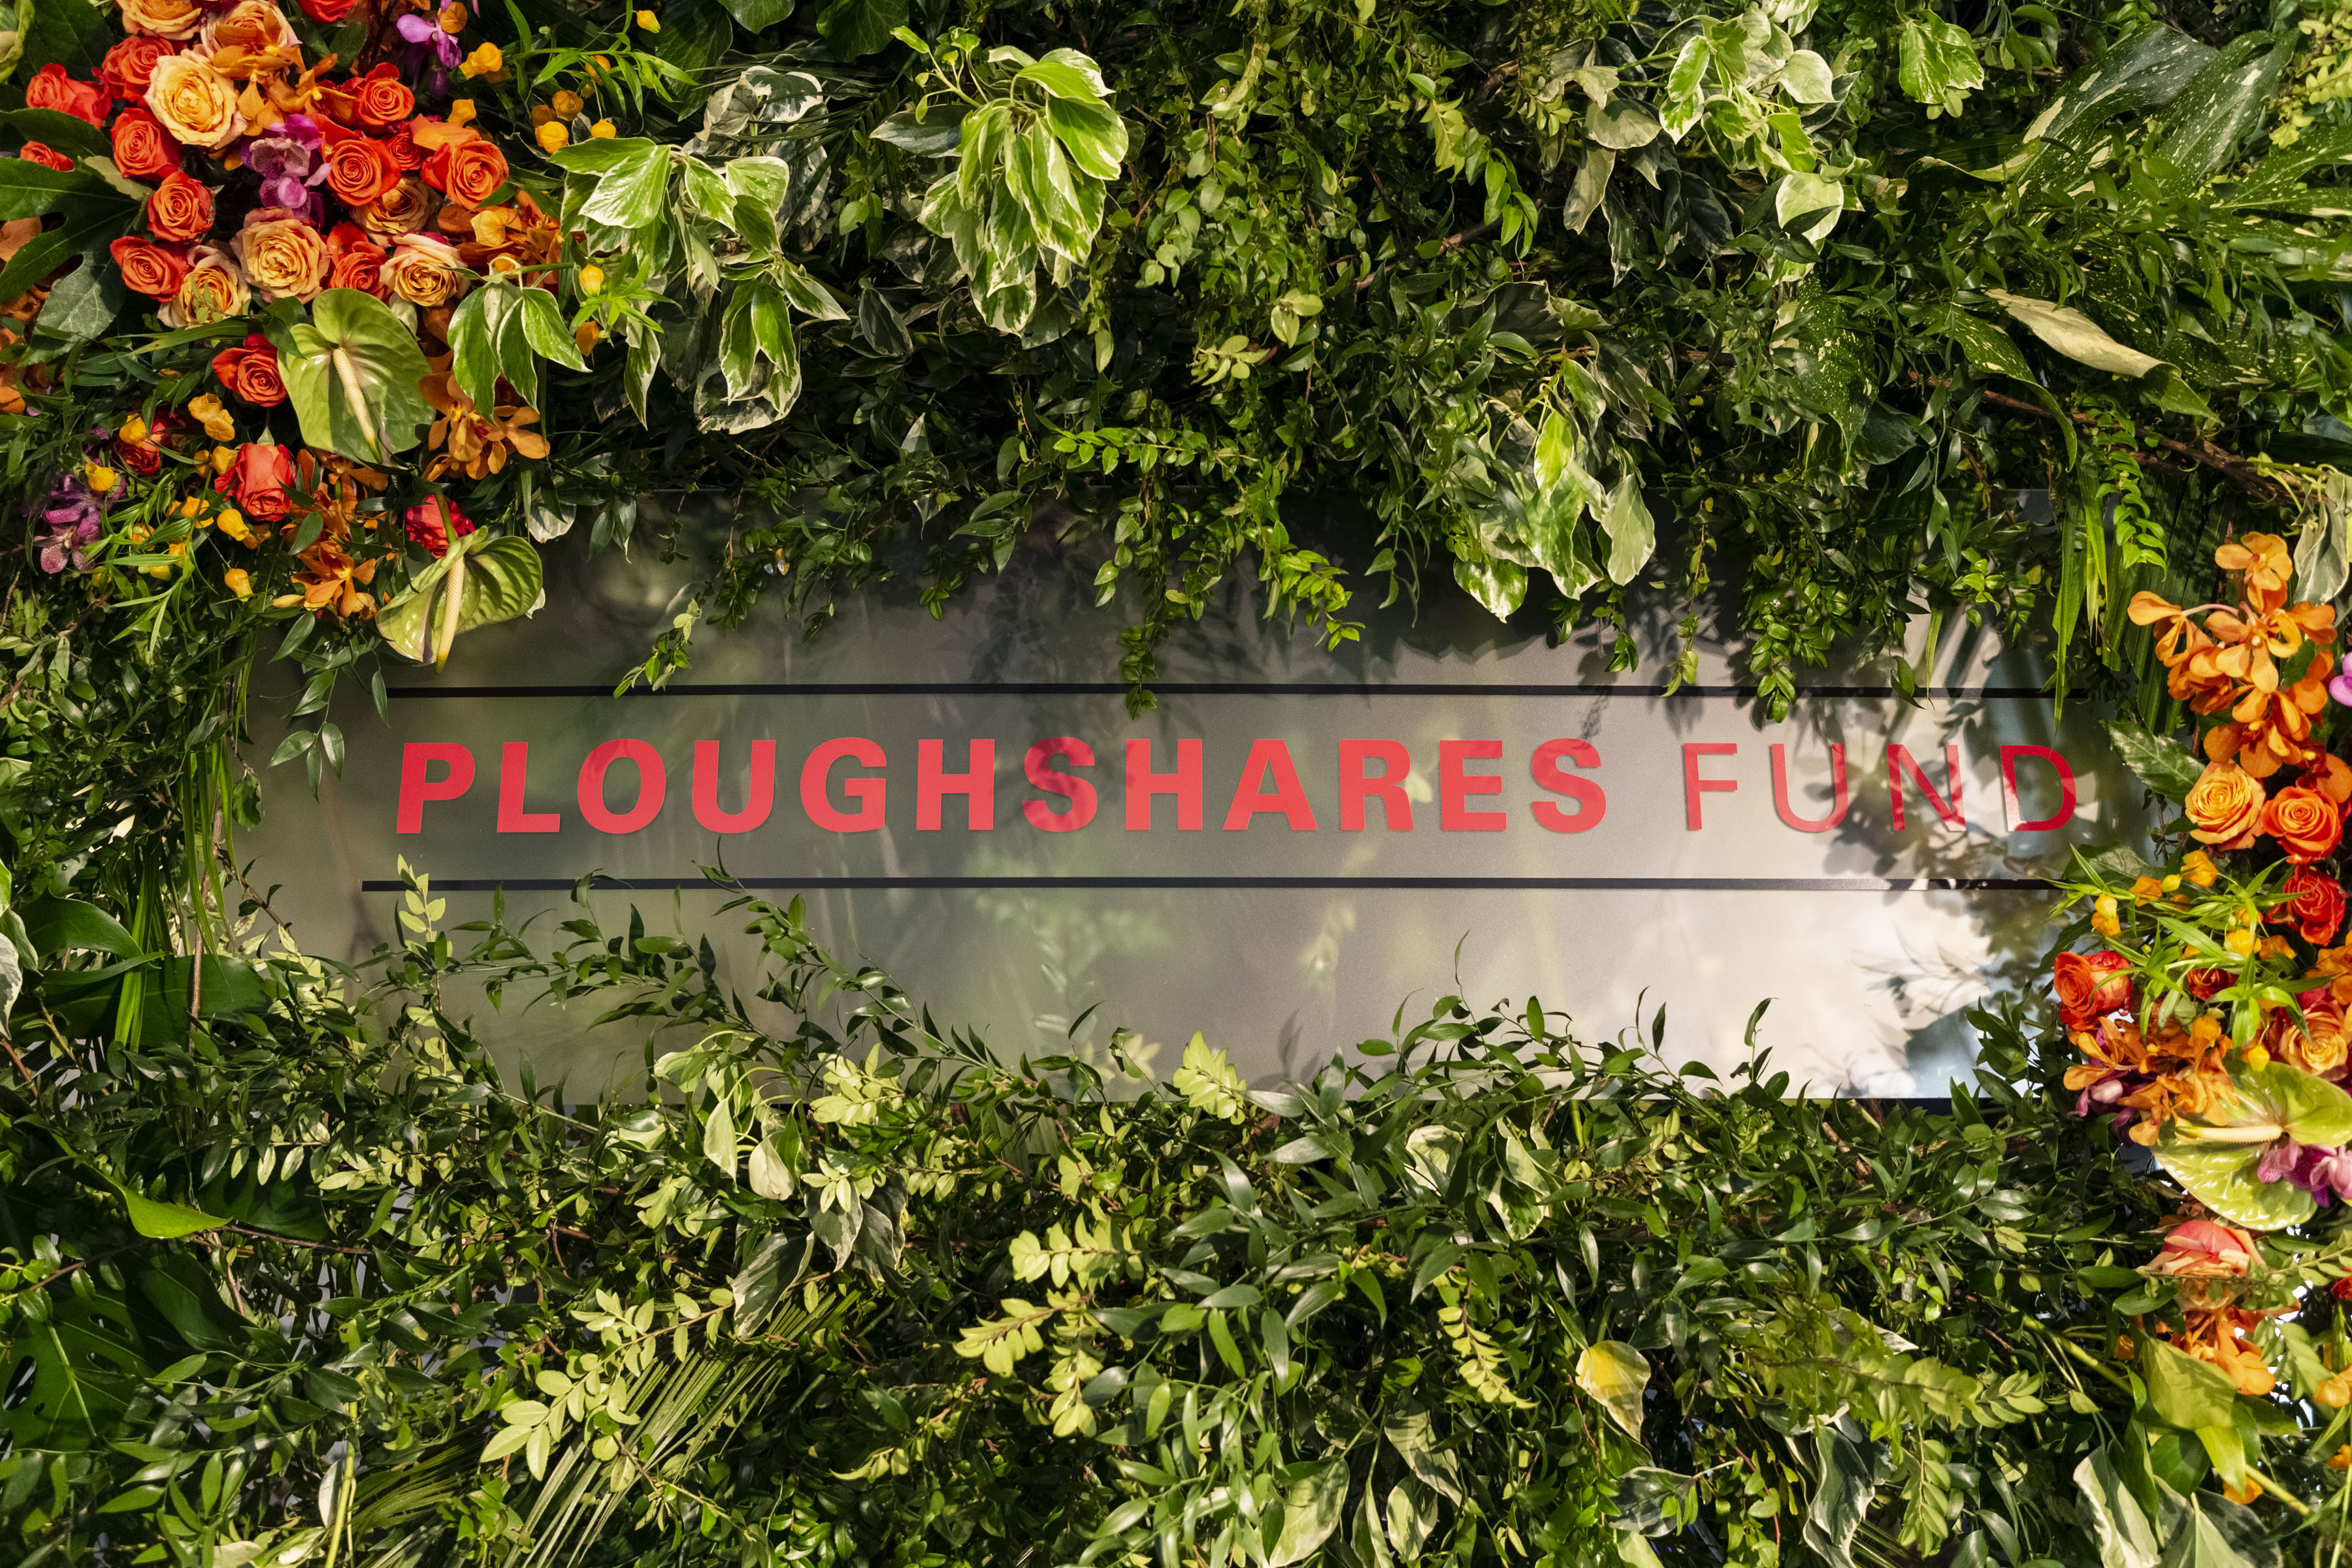 Ploughshares 2019